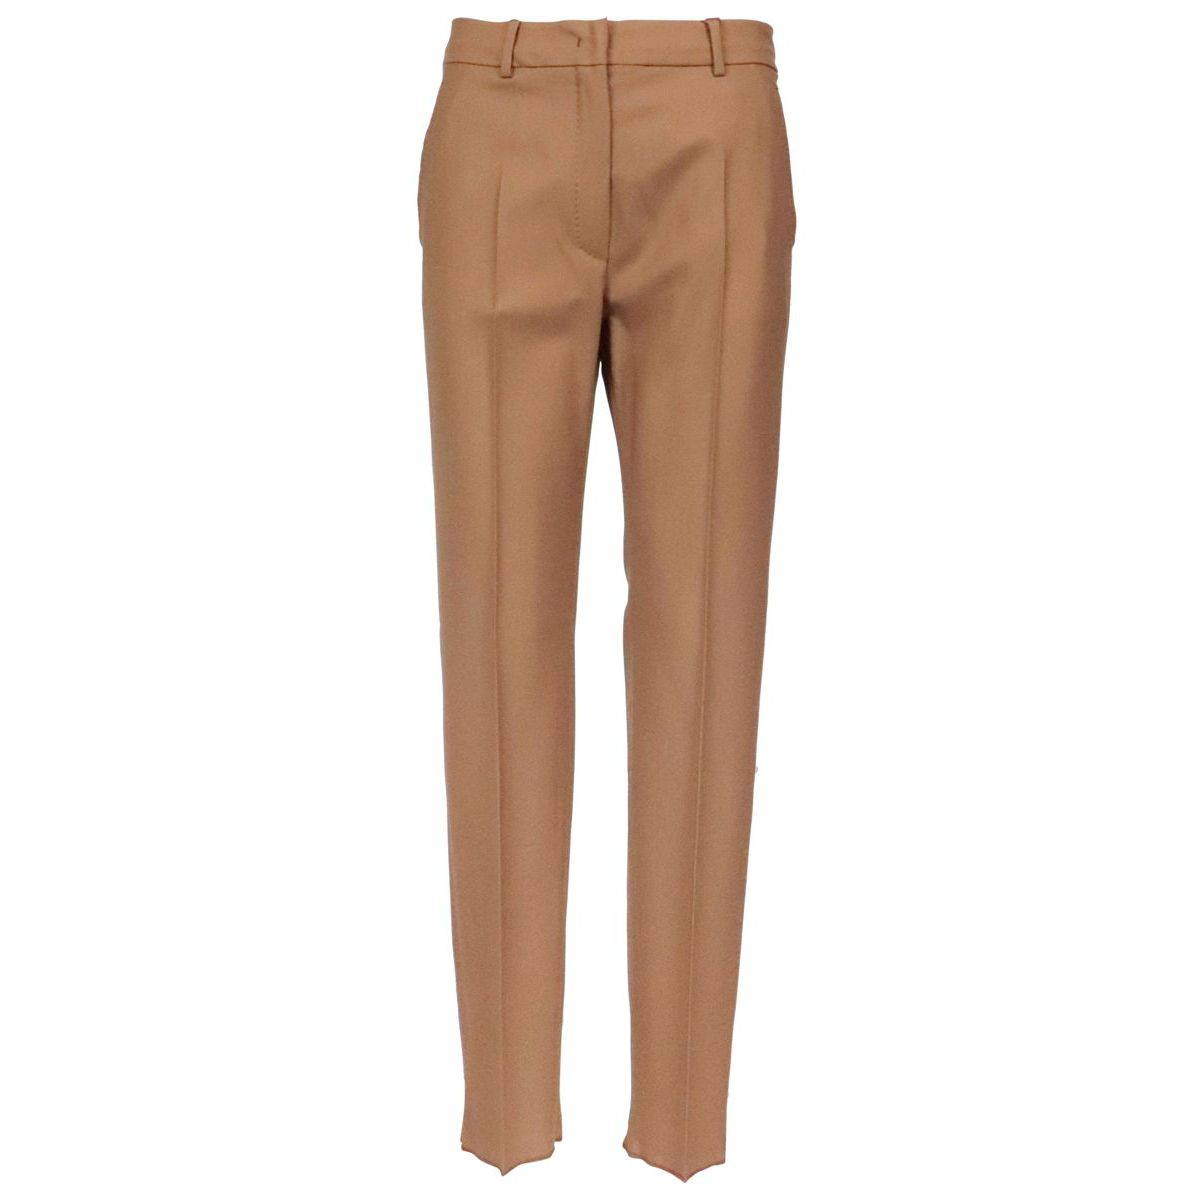 Belford trousers in wool with ironed crease Camel MAX MARA STUDIO